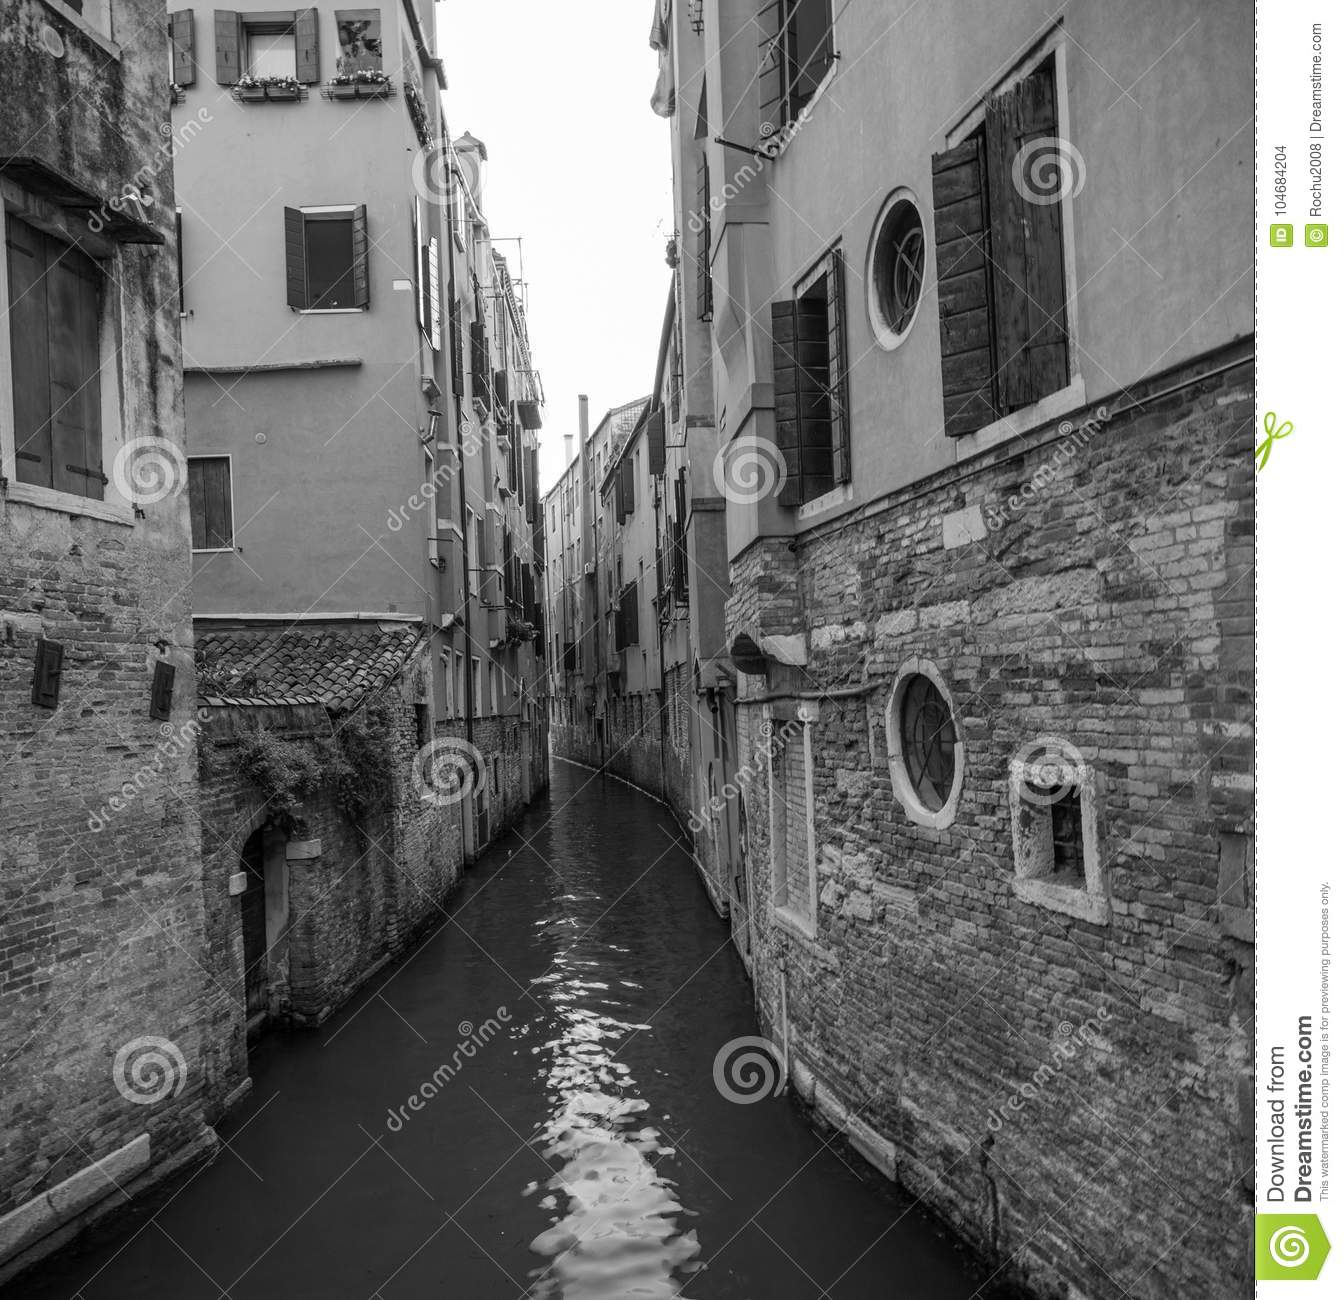 Venice traditional canal surrounded by old architecture black and white